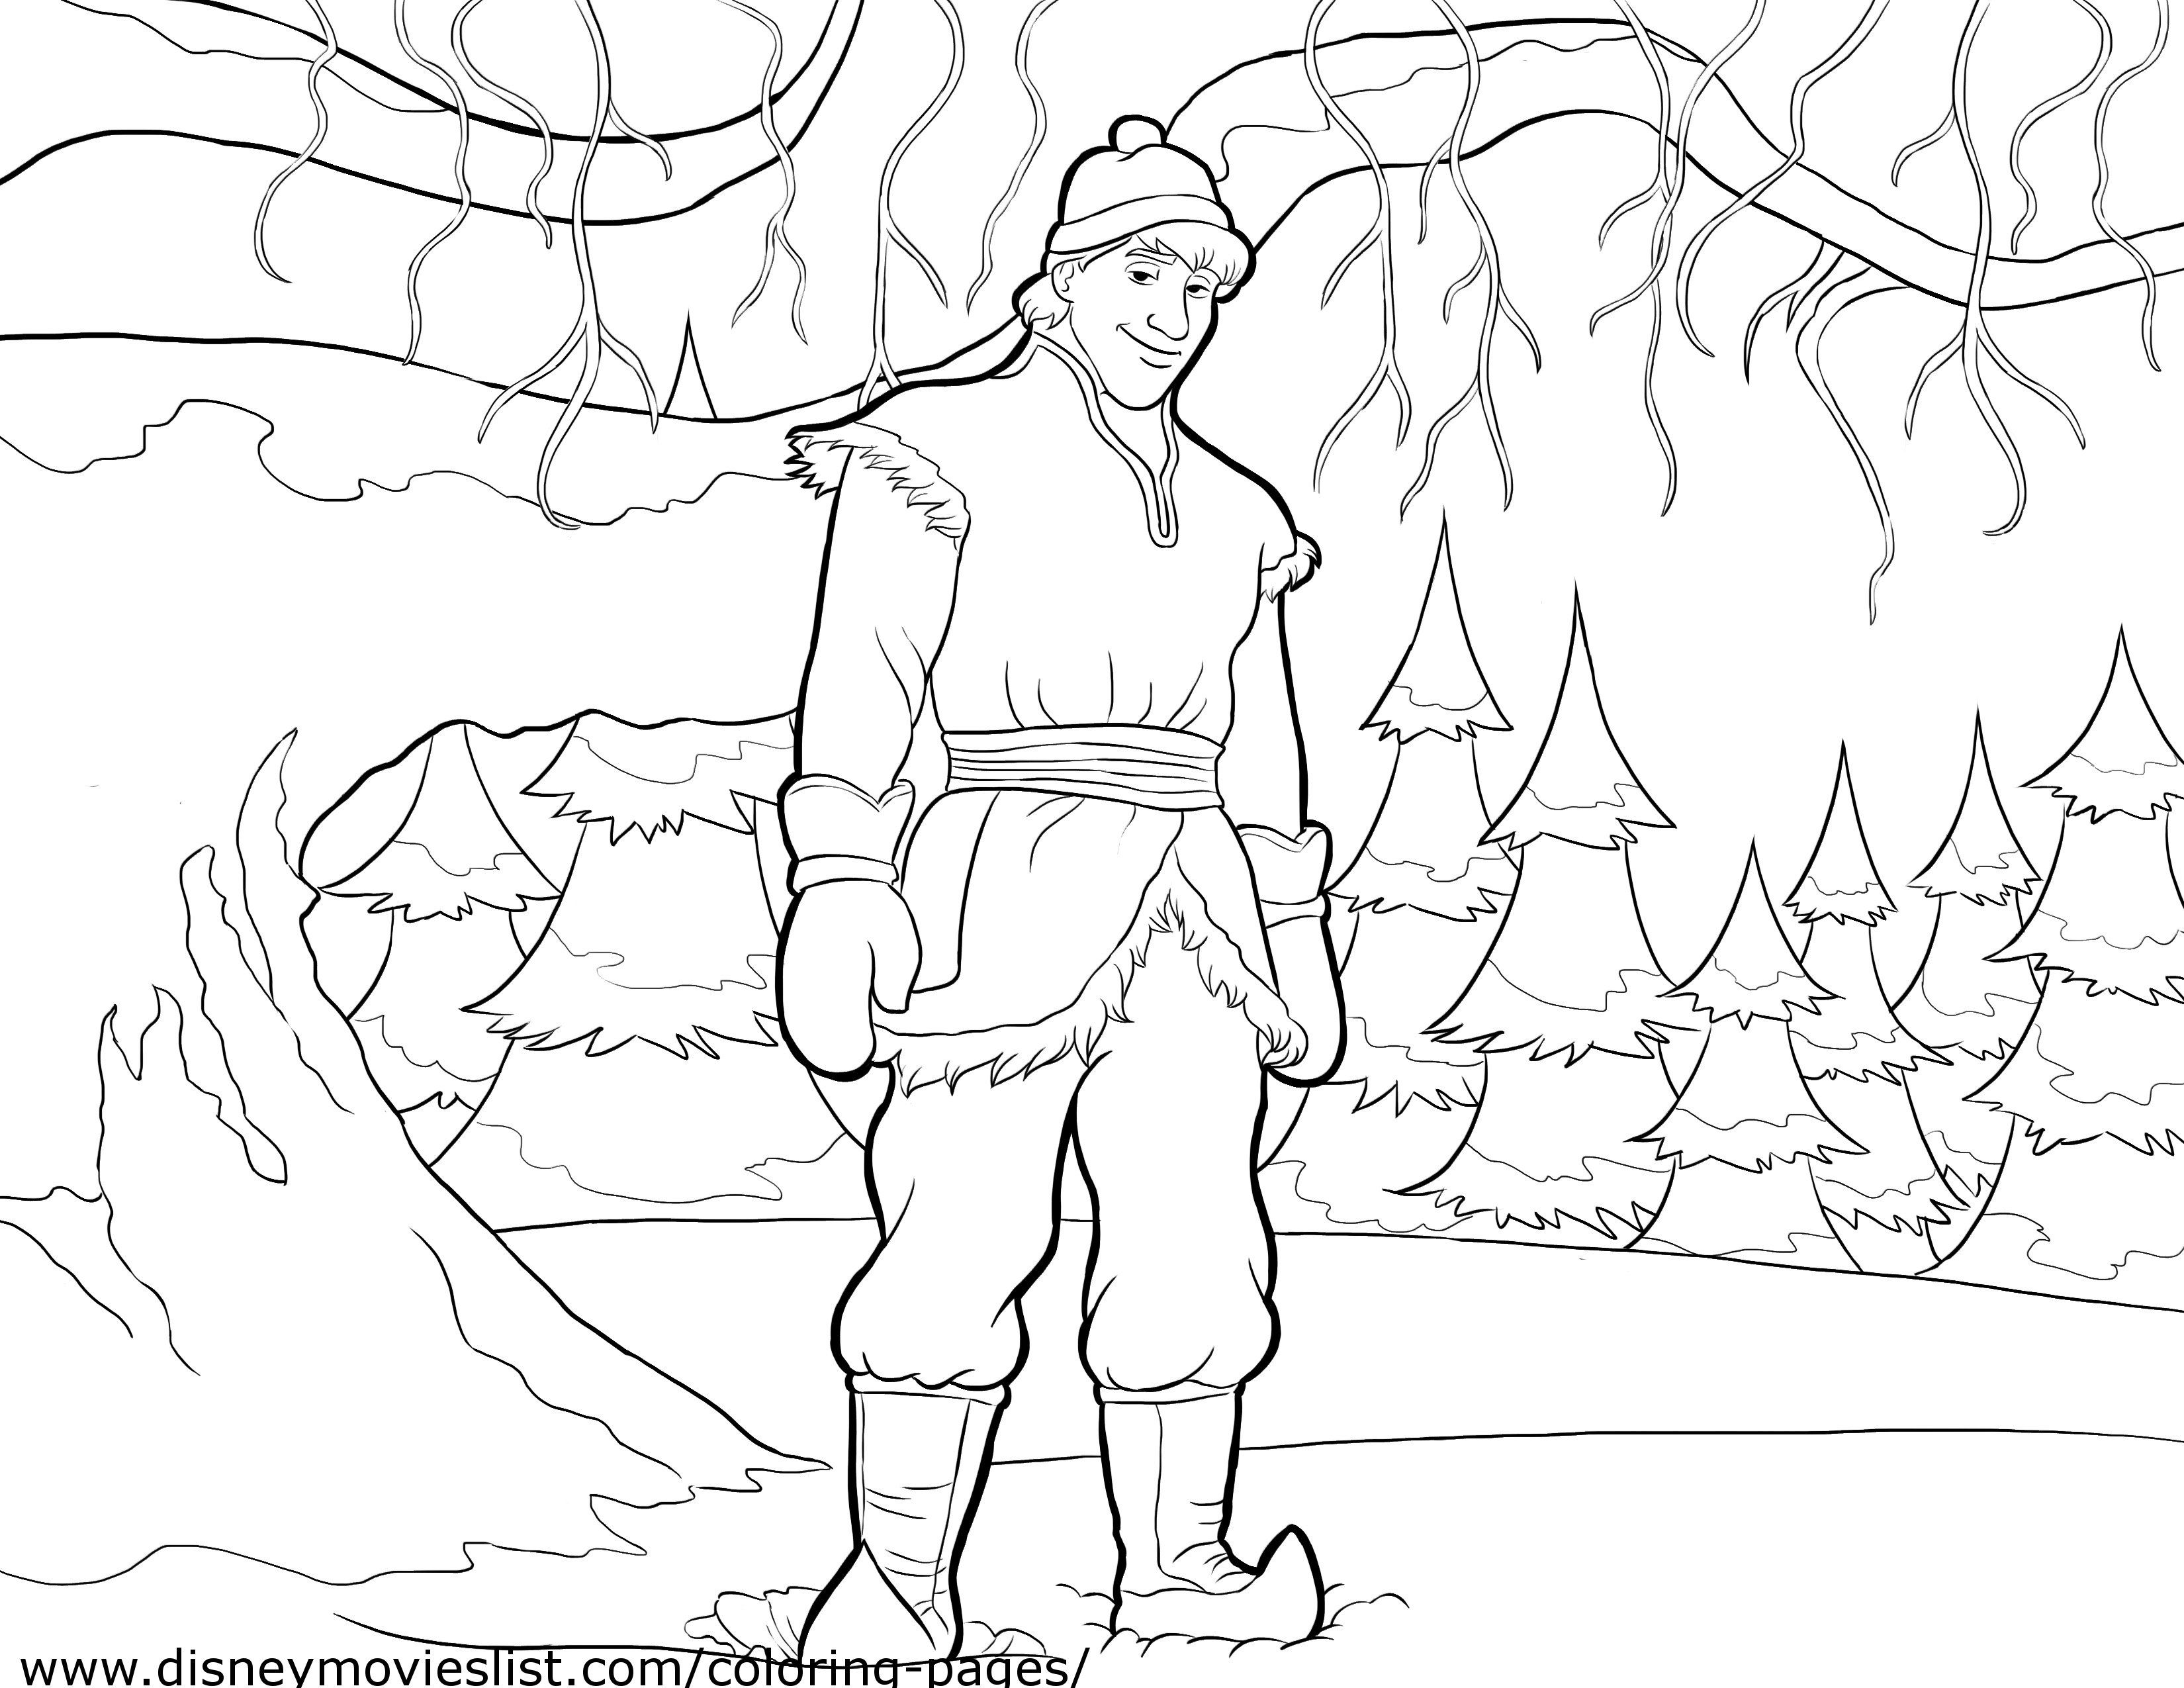 Disney\'s Frozen Coloring Pages Sheet, Free Disney Printable Frozen ...